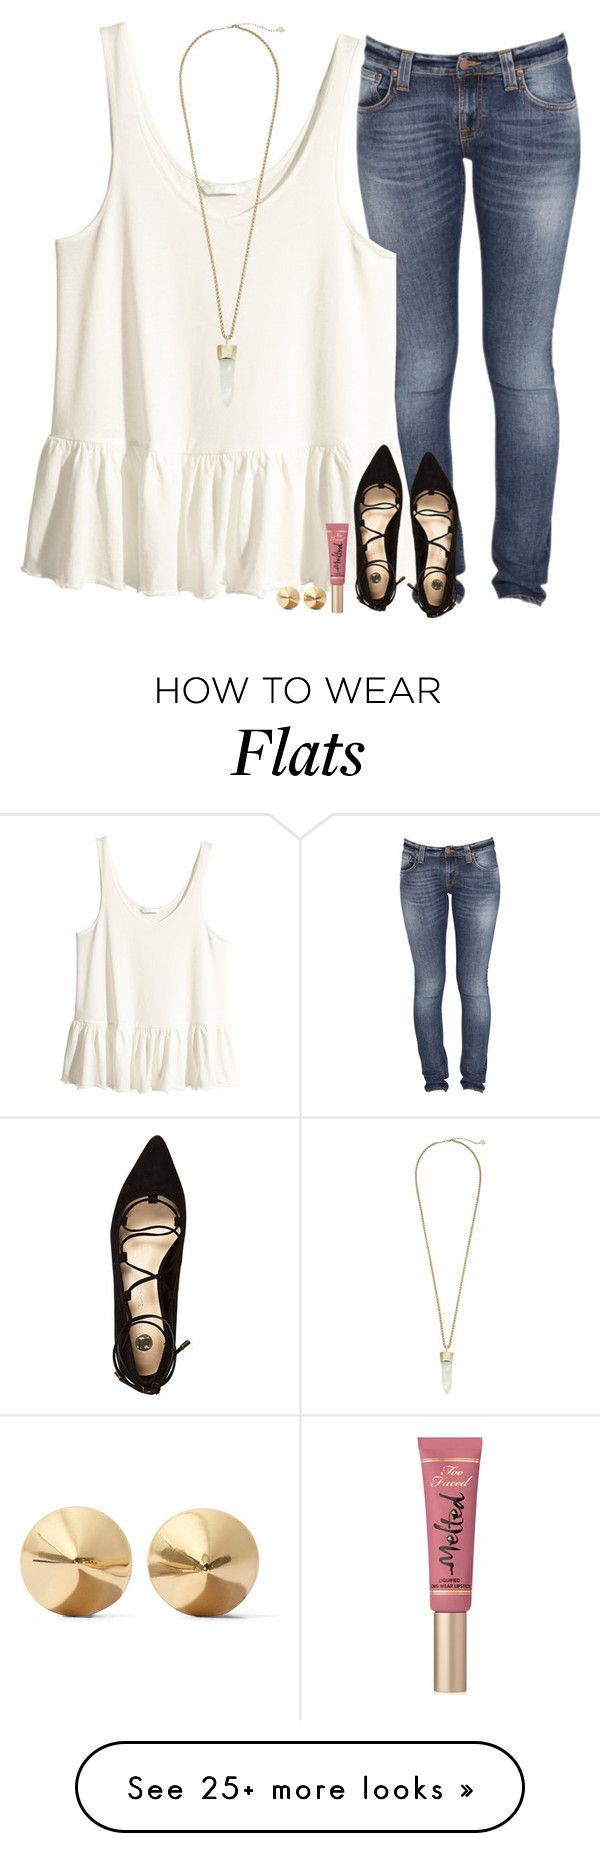 """When You're Crushing Really Hard, and When You See Him You Sort Of Hyperventilate."" by evieleet on Polyvore featuring Nudie Jeans Co., H&M, River Island, Too Faced Cosmetics, Eddie Borgo, Kendra Scott, women's clothing, women's fashion, women and female"